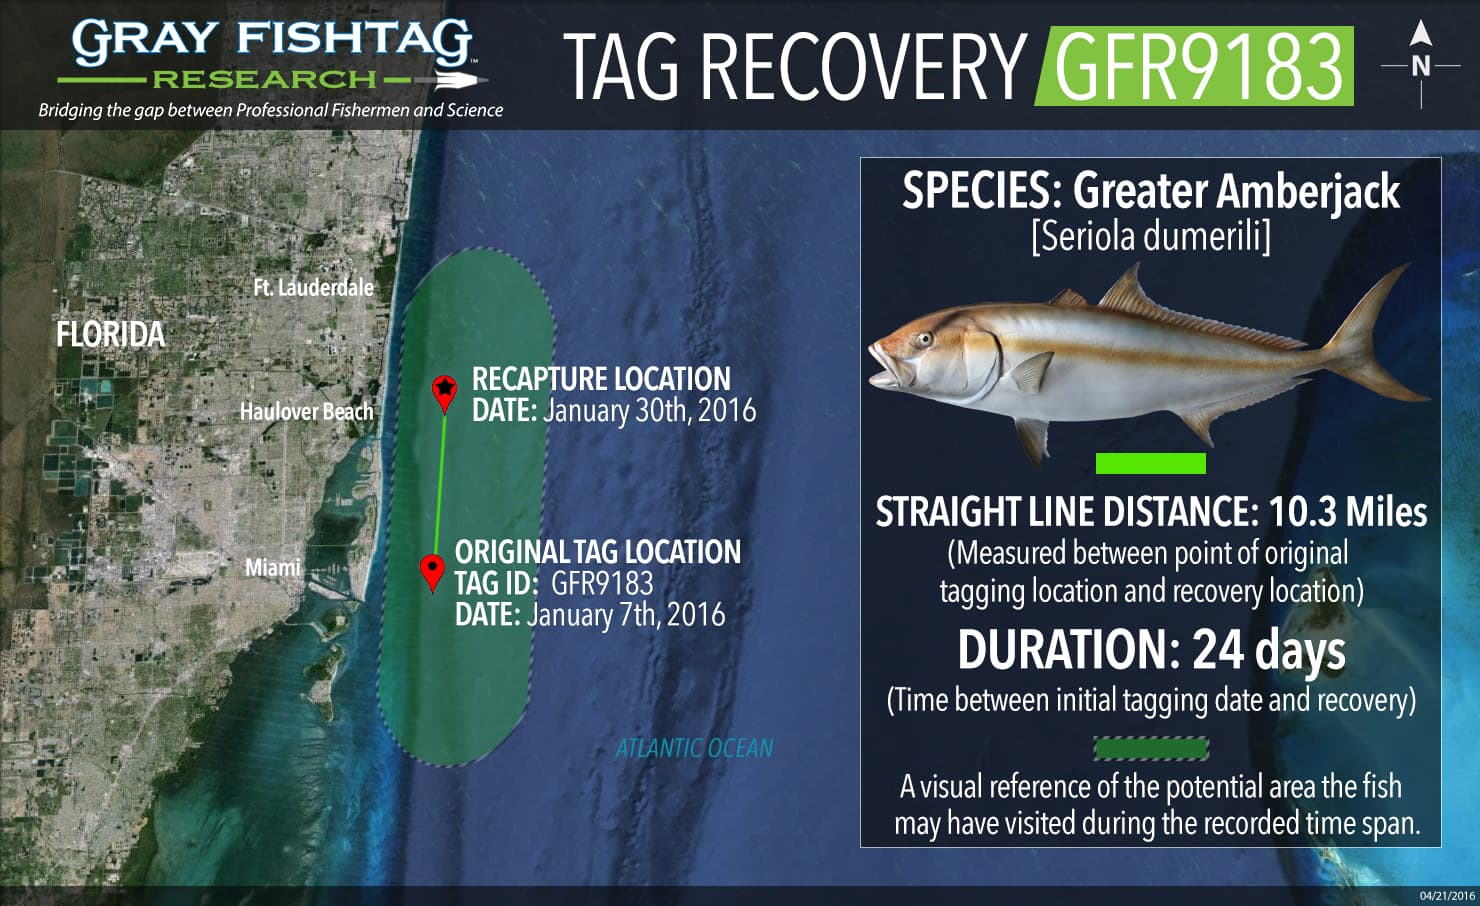 GFR9183-Greater-Amberjack-Recovery